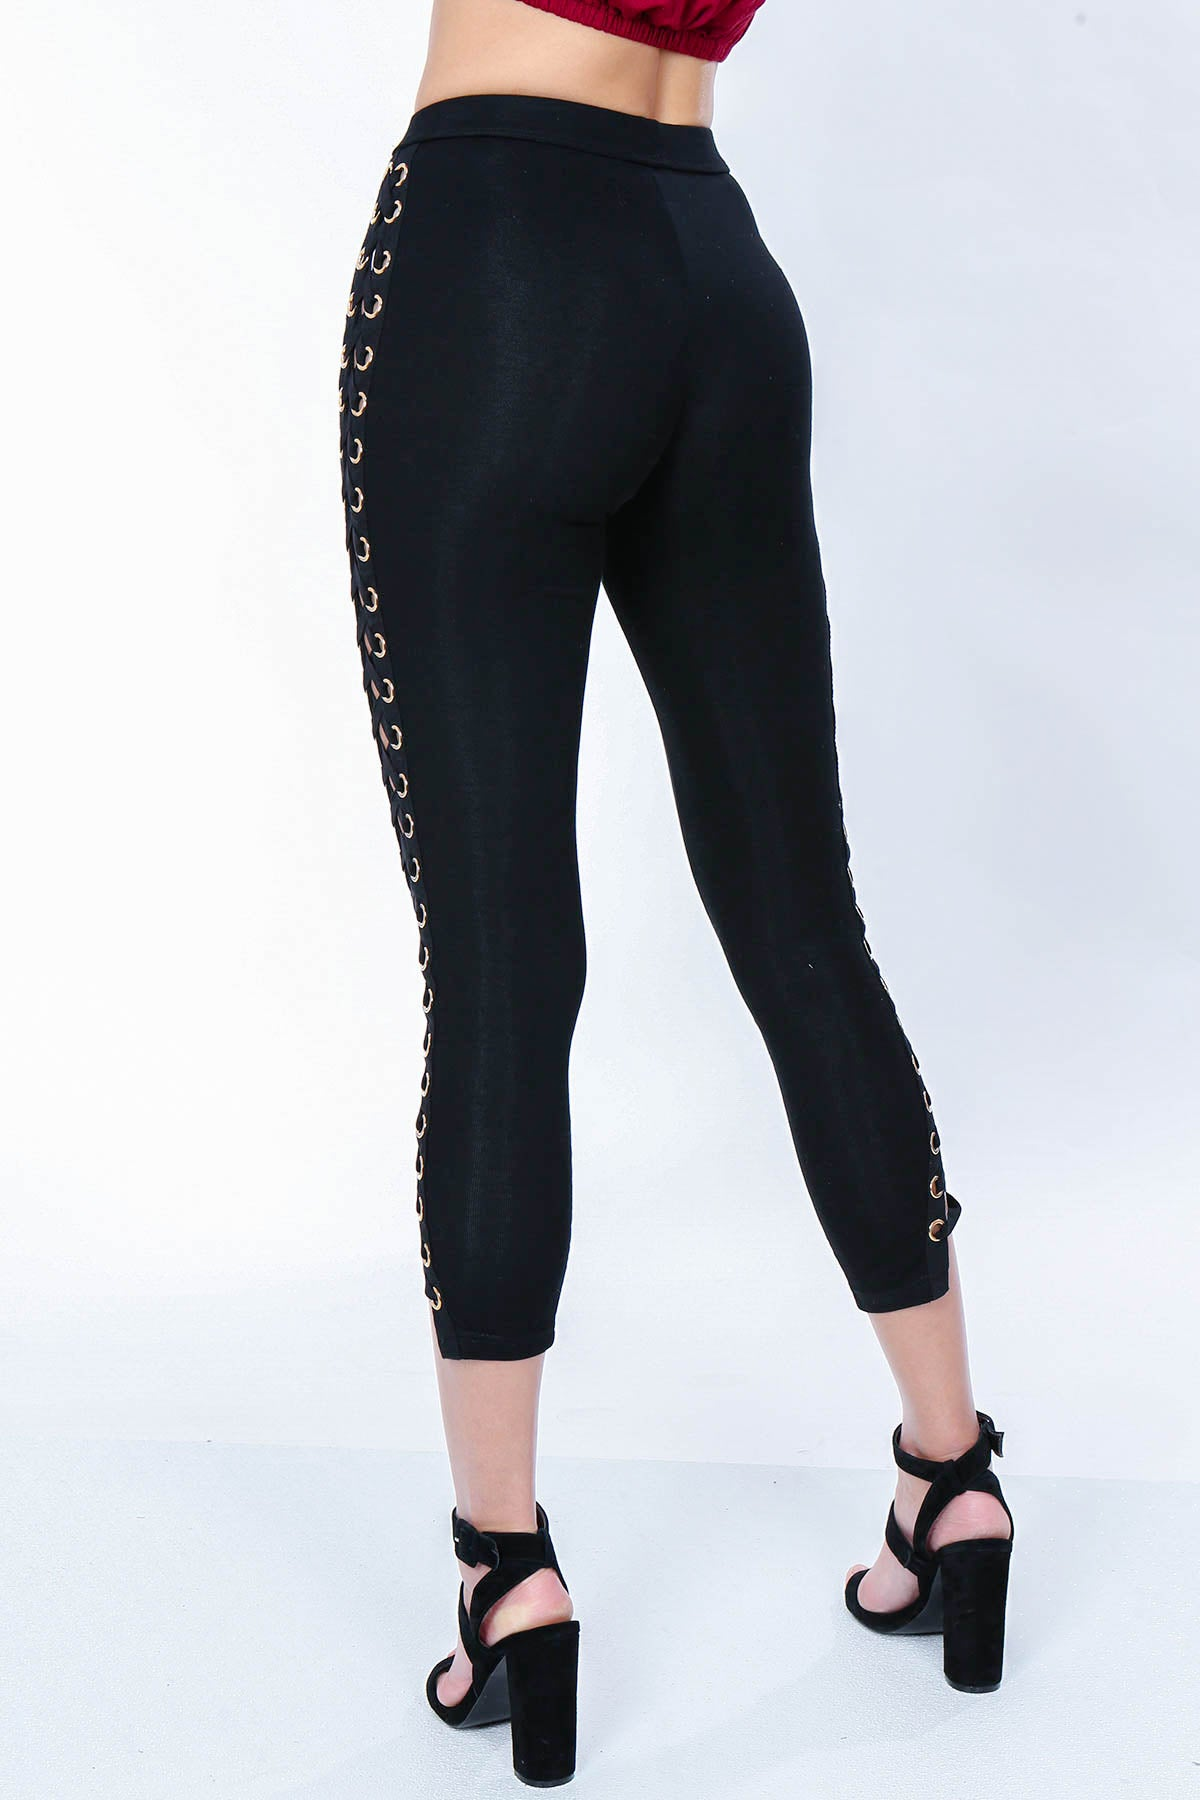 Aynara Fashion Side Eyelet Long Pants